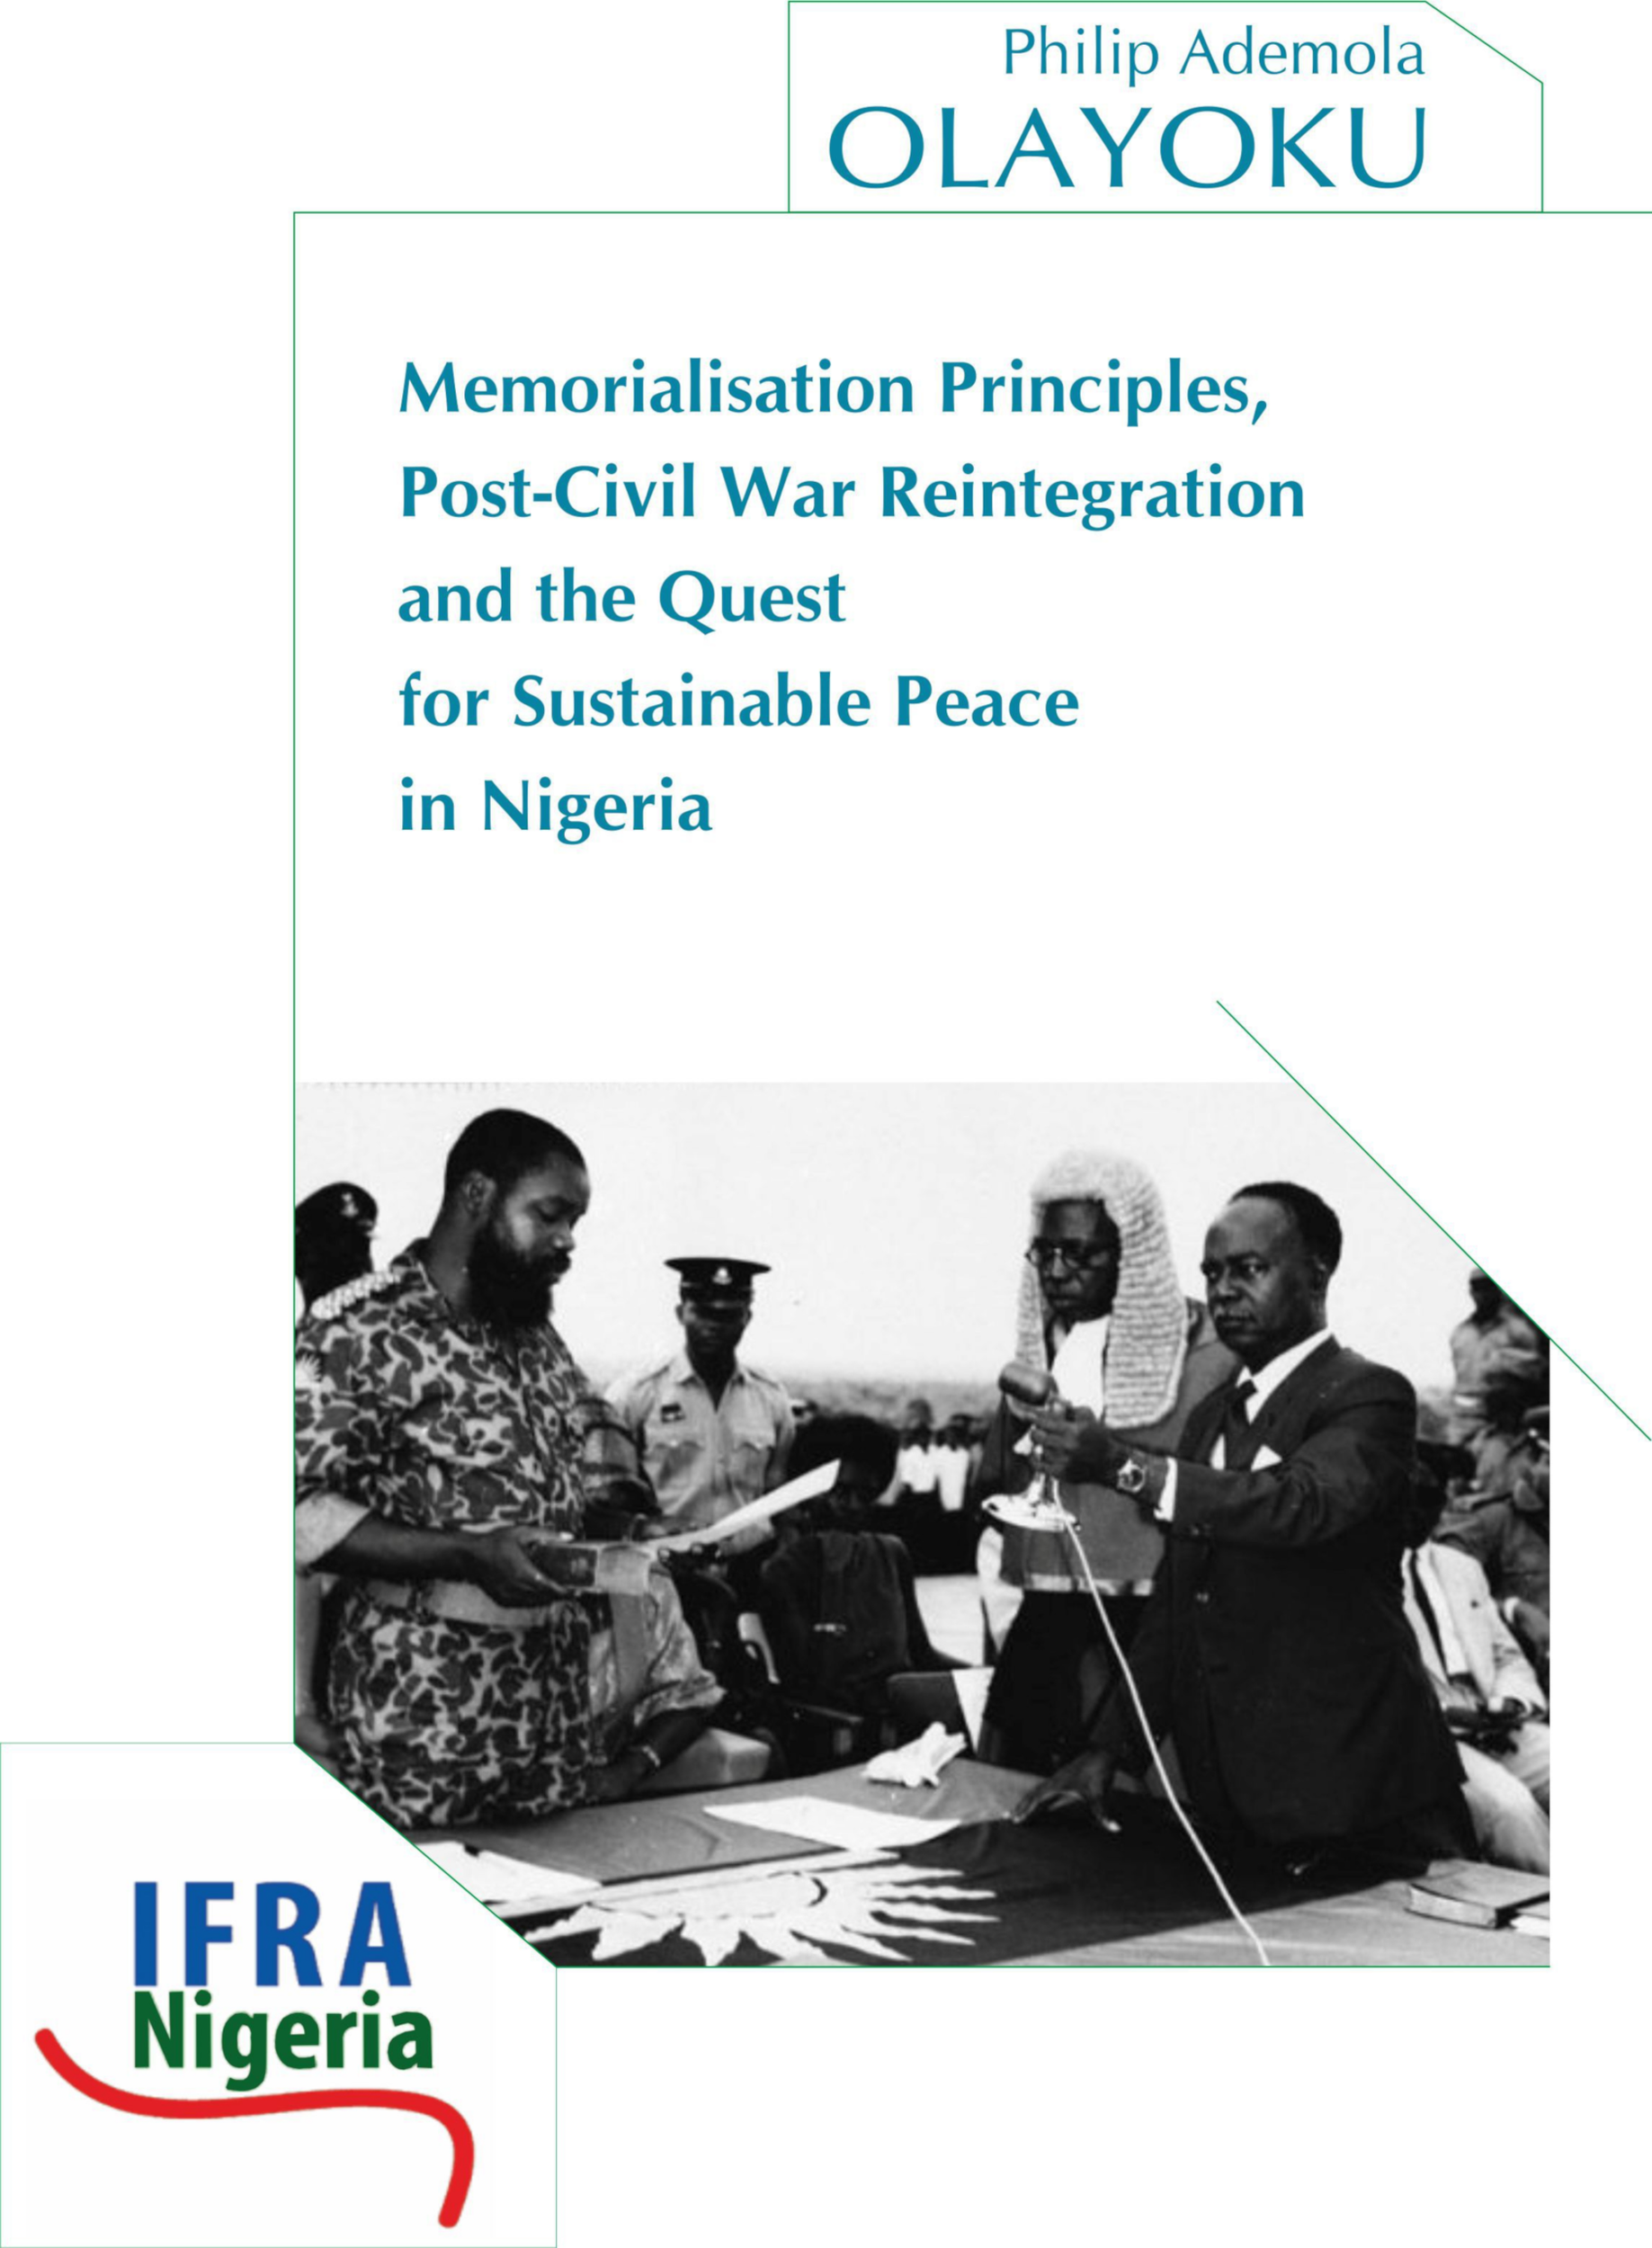 Memorialisation Principles, Post-Civil War Reintegration and the Quest for Sustainable Peace in Nigeria